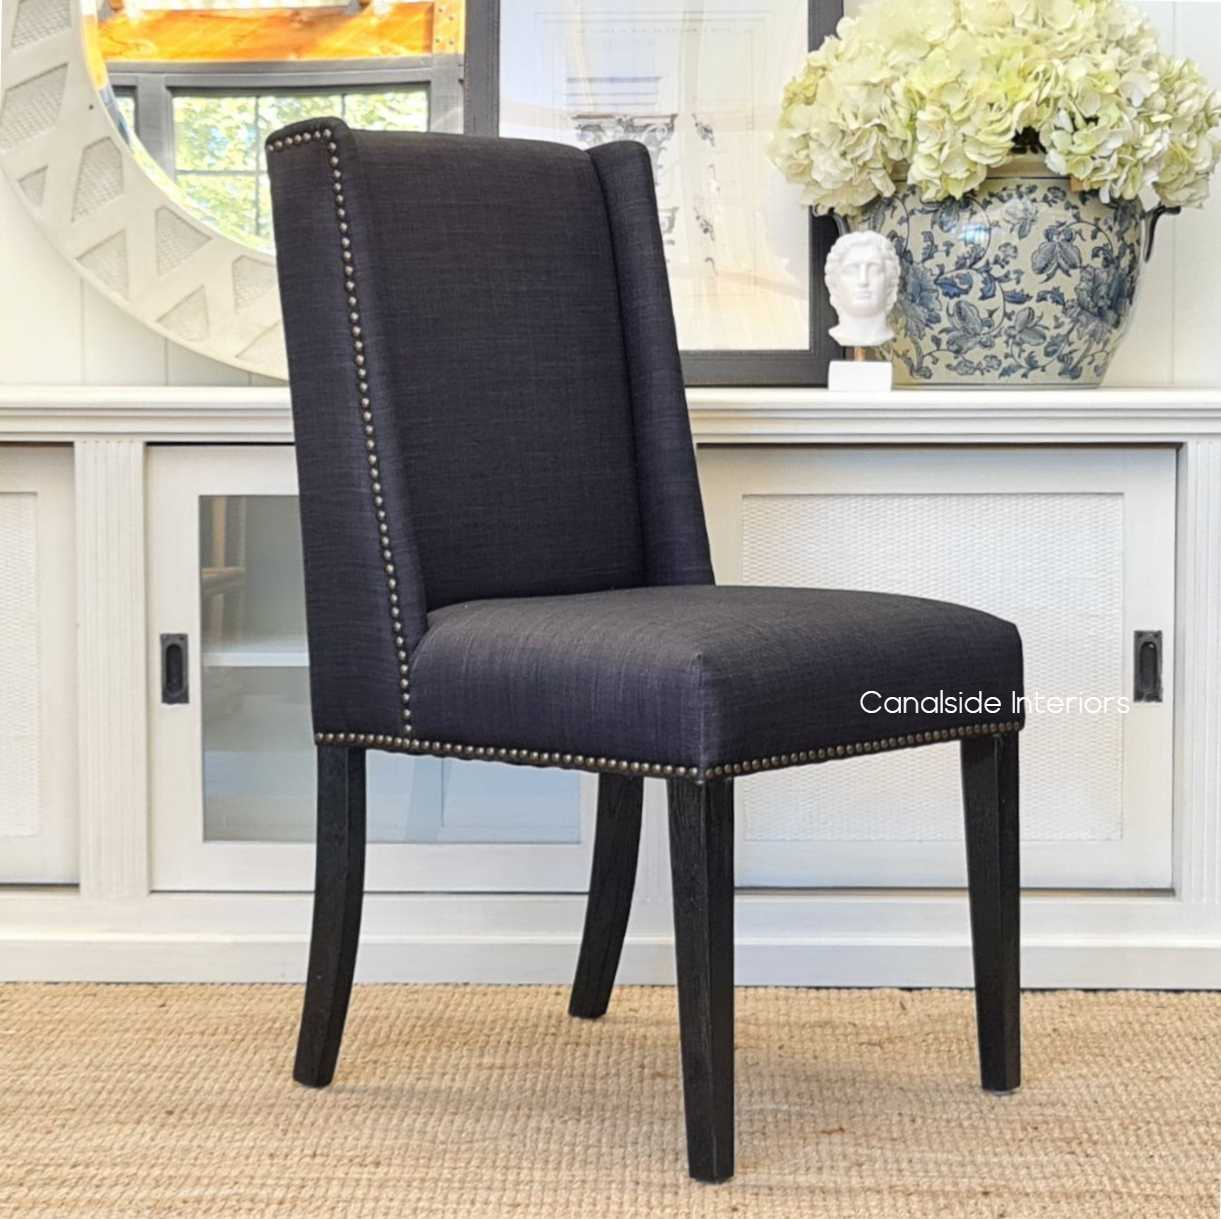 Leclerc Dining Chair Black charcoal upholstery black legs base, CHAIRS, HAMPTONS Style, PLANTATION Style, CHAIRS Dining, kitchen, dining room, winged